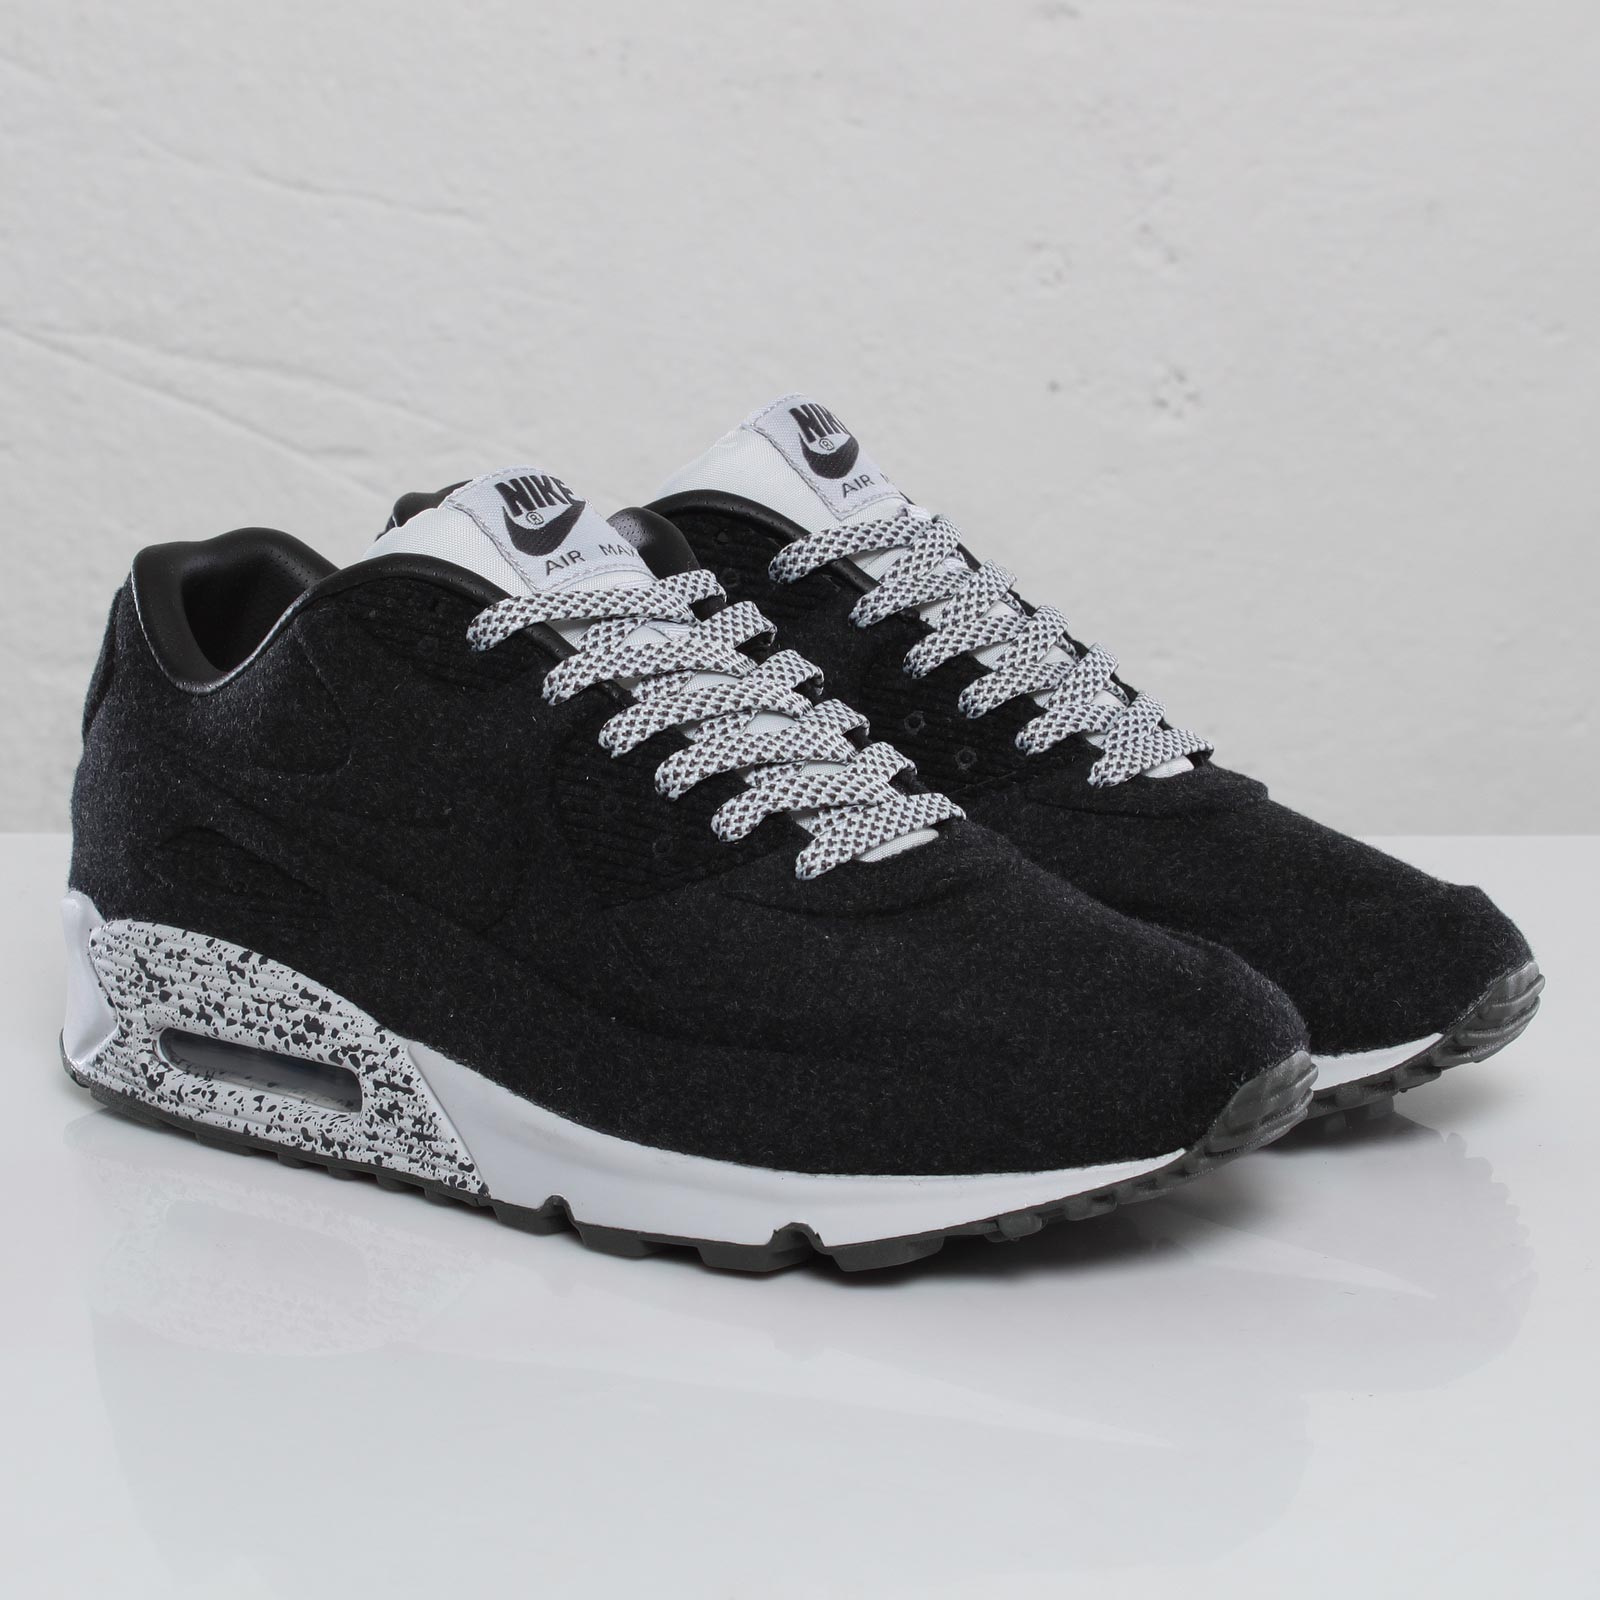 wholesale dealer 6dc55 f1b7f Nike Air Max 90 VT